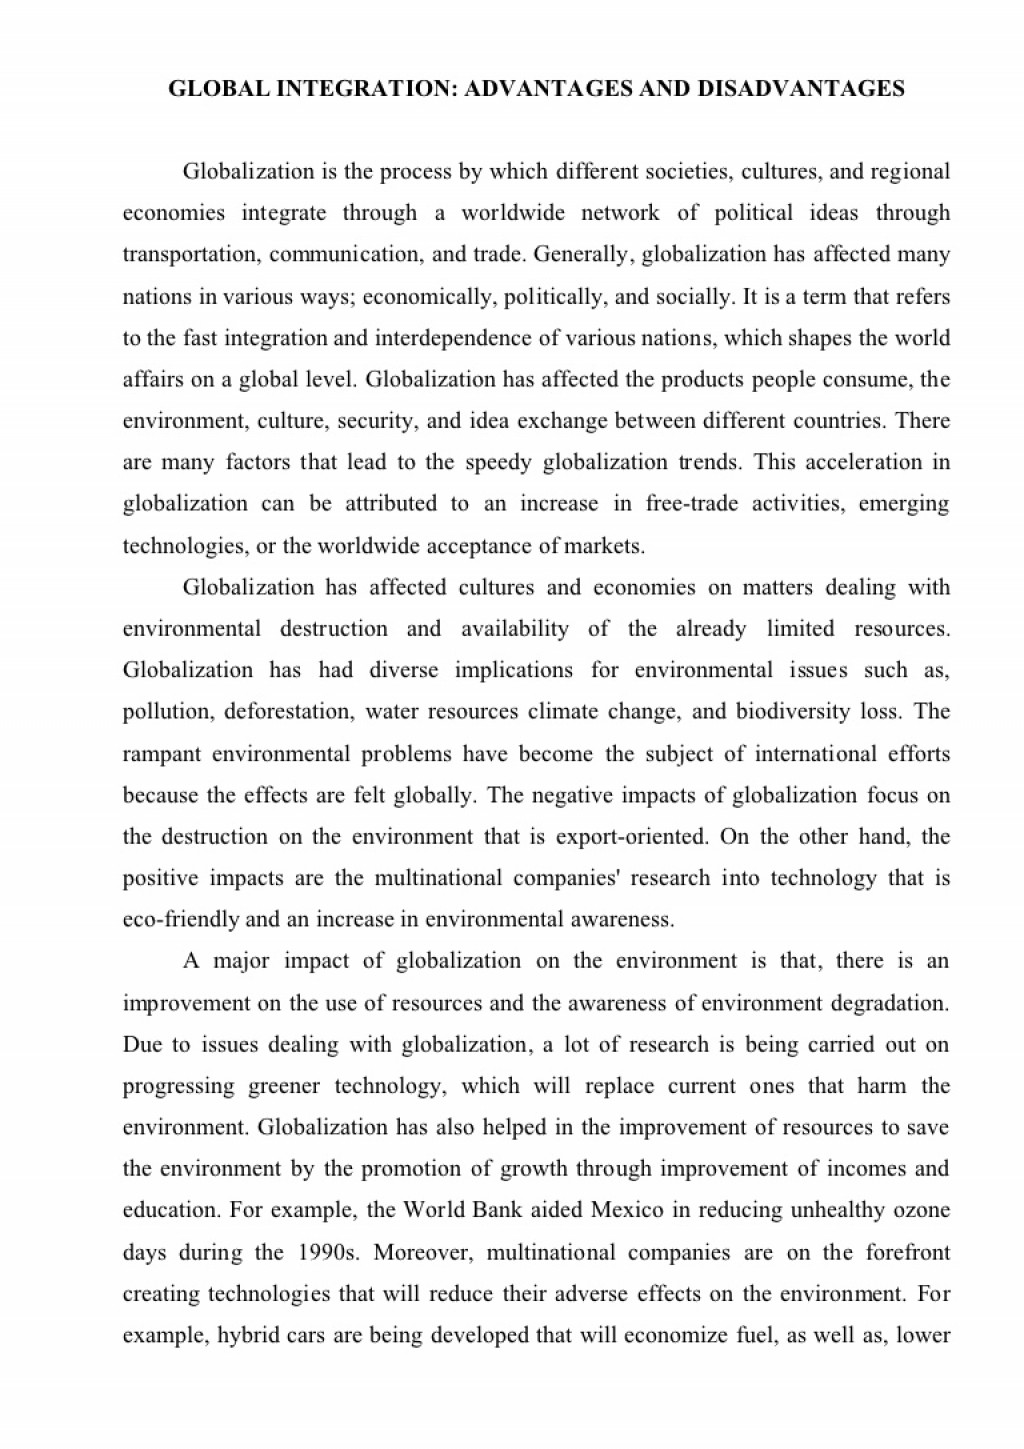 021 Essayglobalization Phpapp02 Thumbnail Essay Example Advantage And Disadvantage Of Shocking Science Advantages Disadvantages With Quotes In Marathi Urdu Large